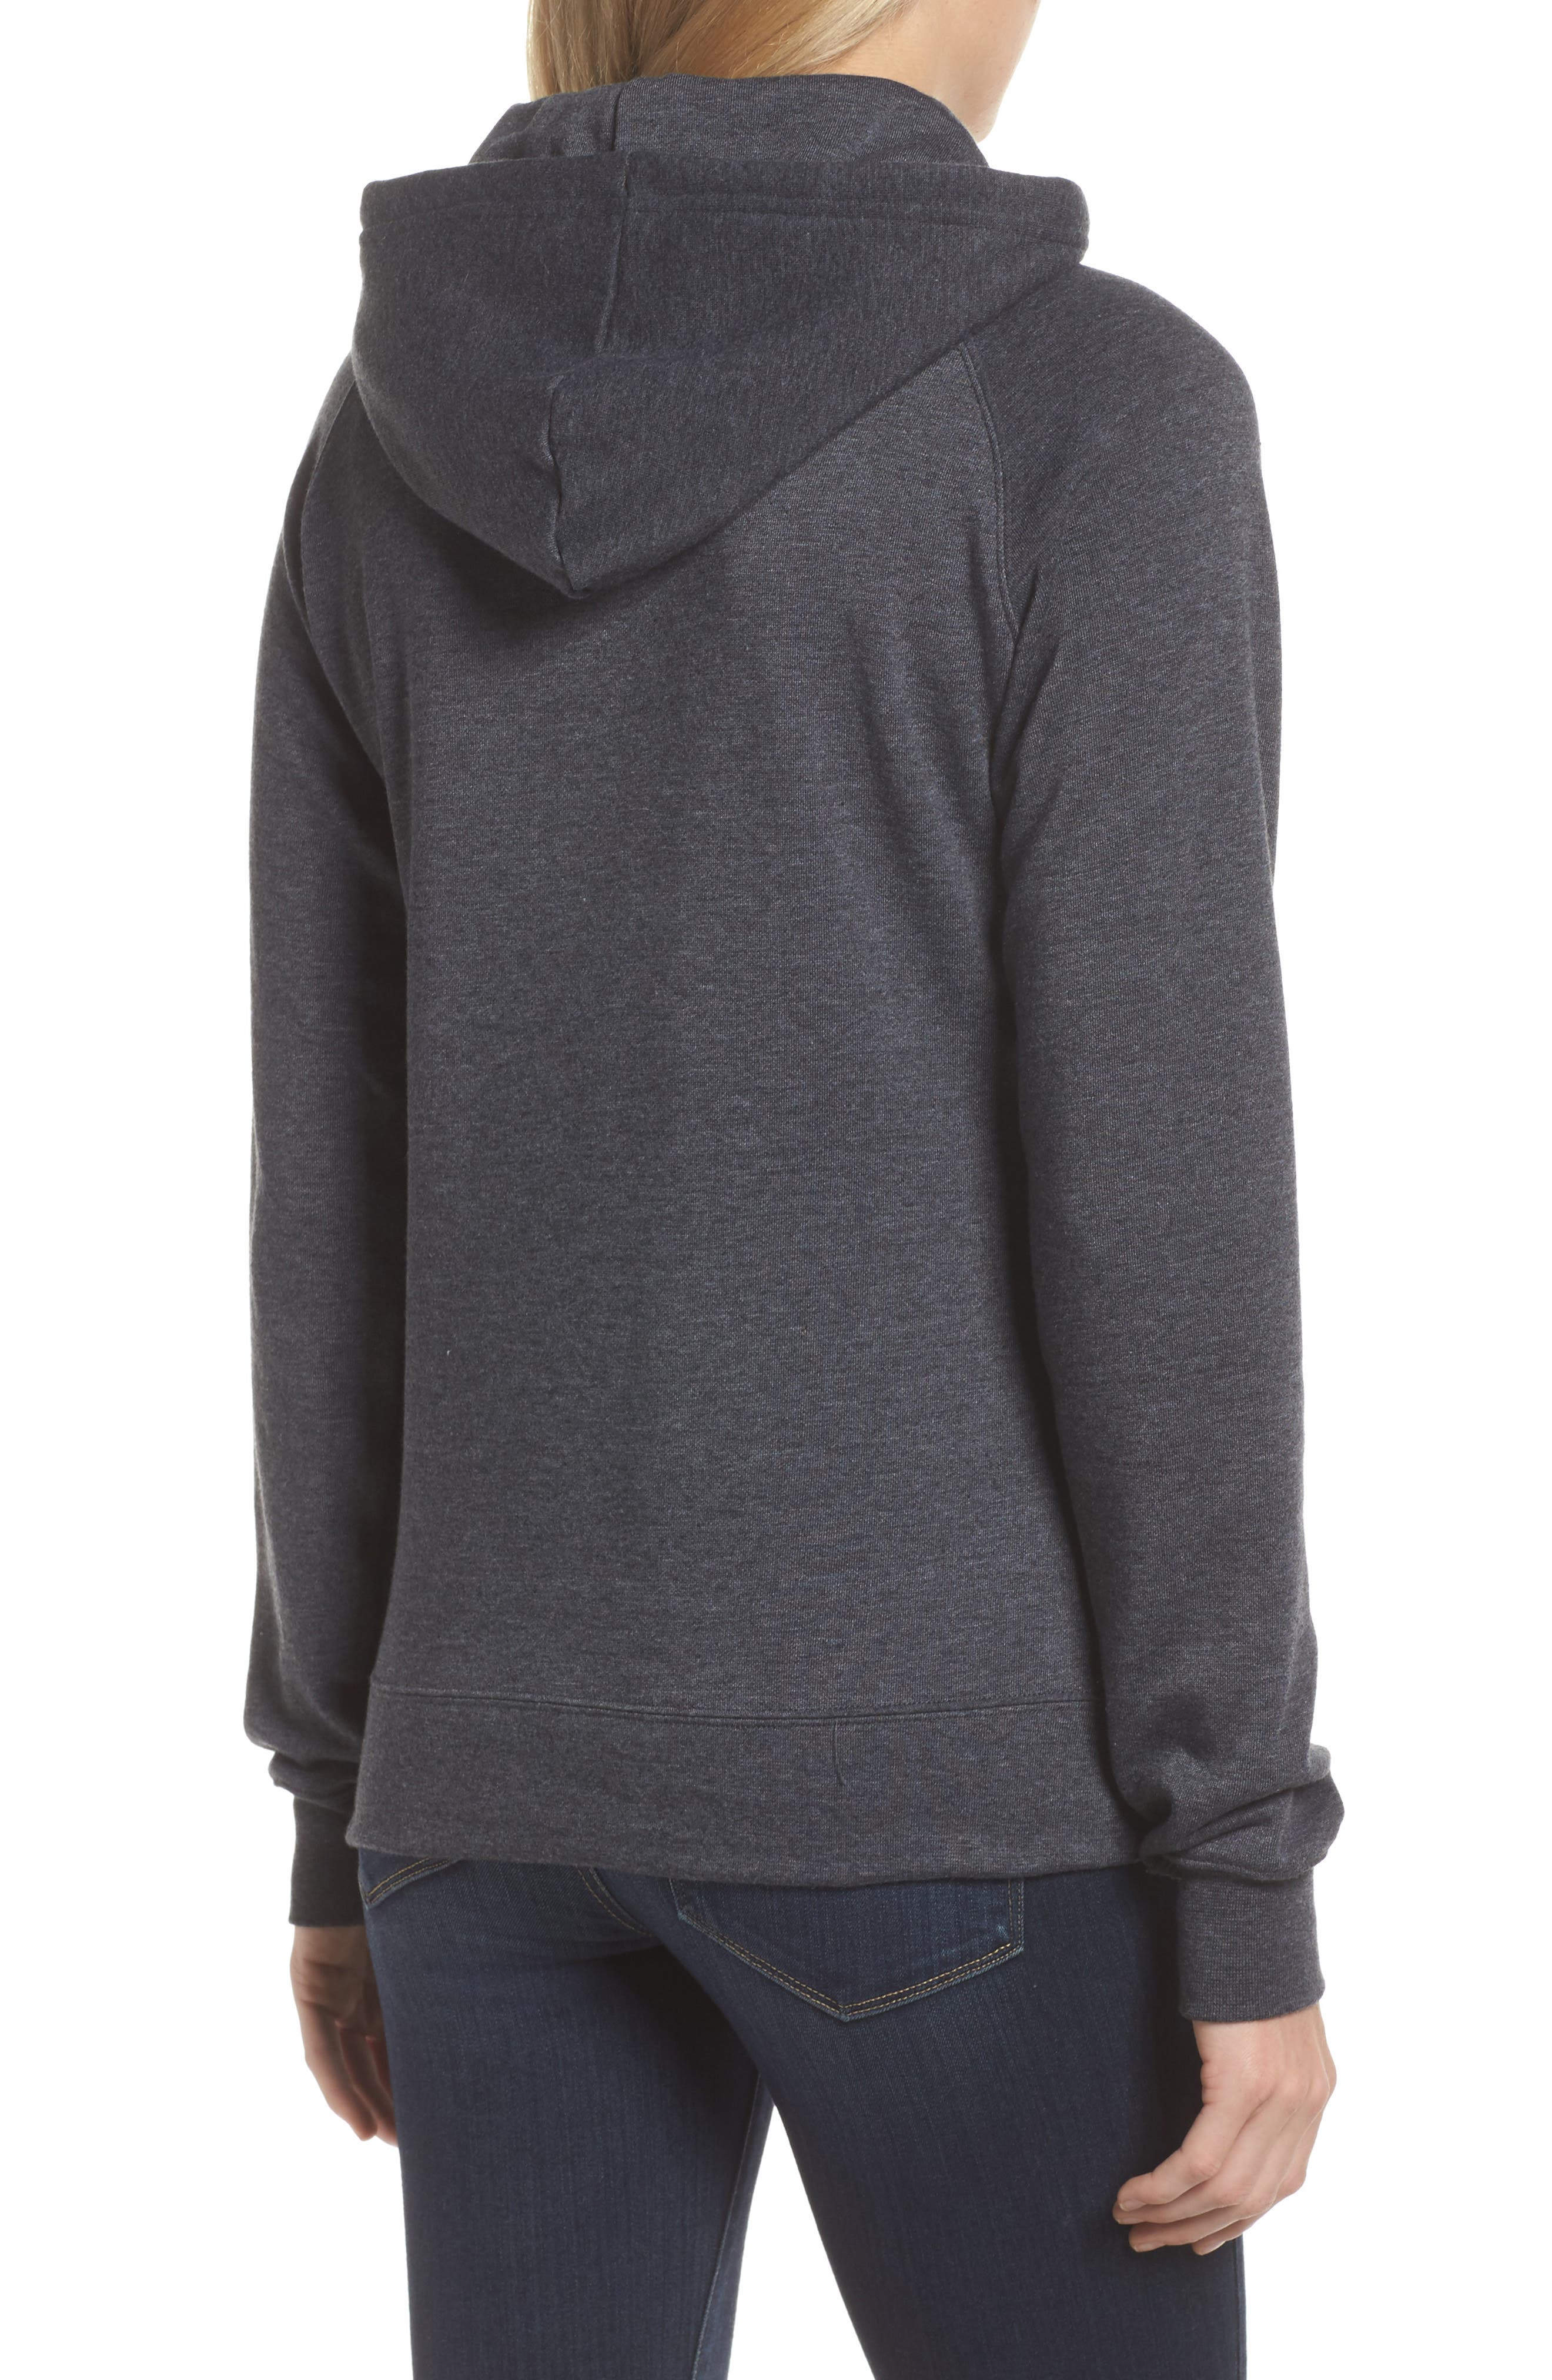 International Collection USA Pullover Hoodie,                             Alternate thumbnail 2, color,                             021